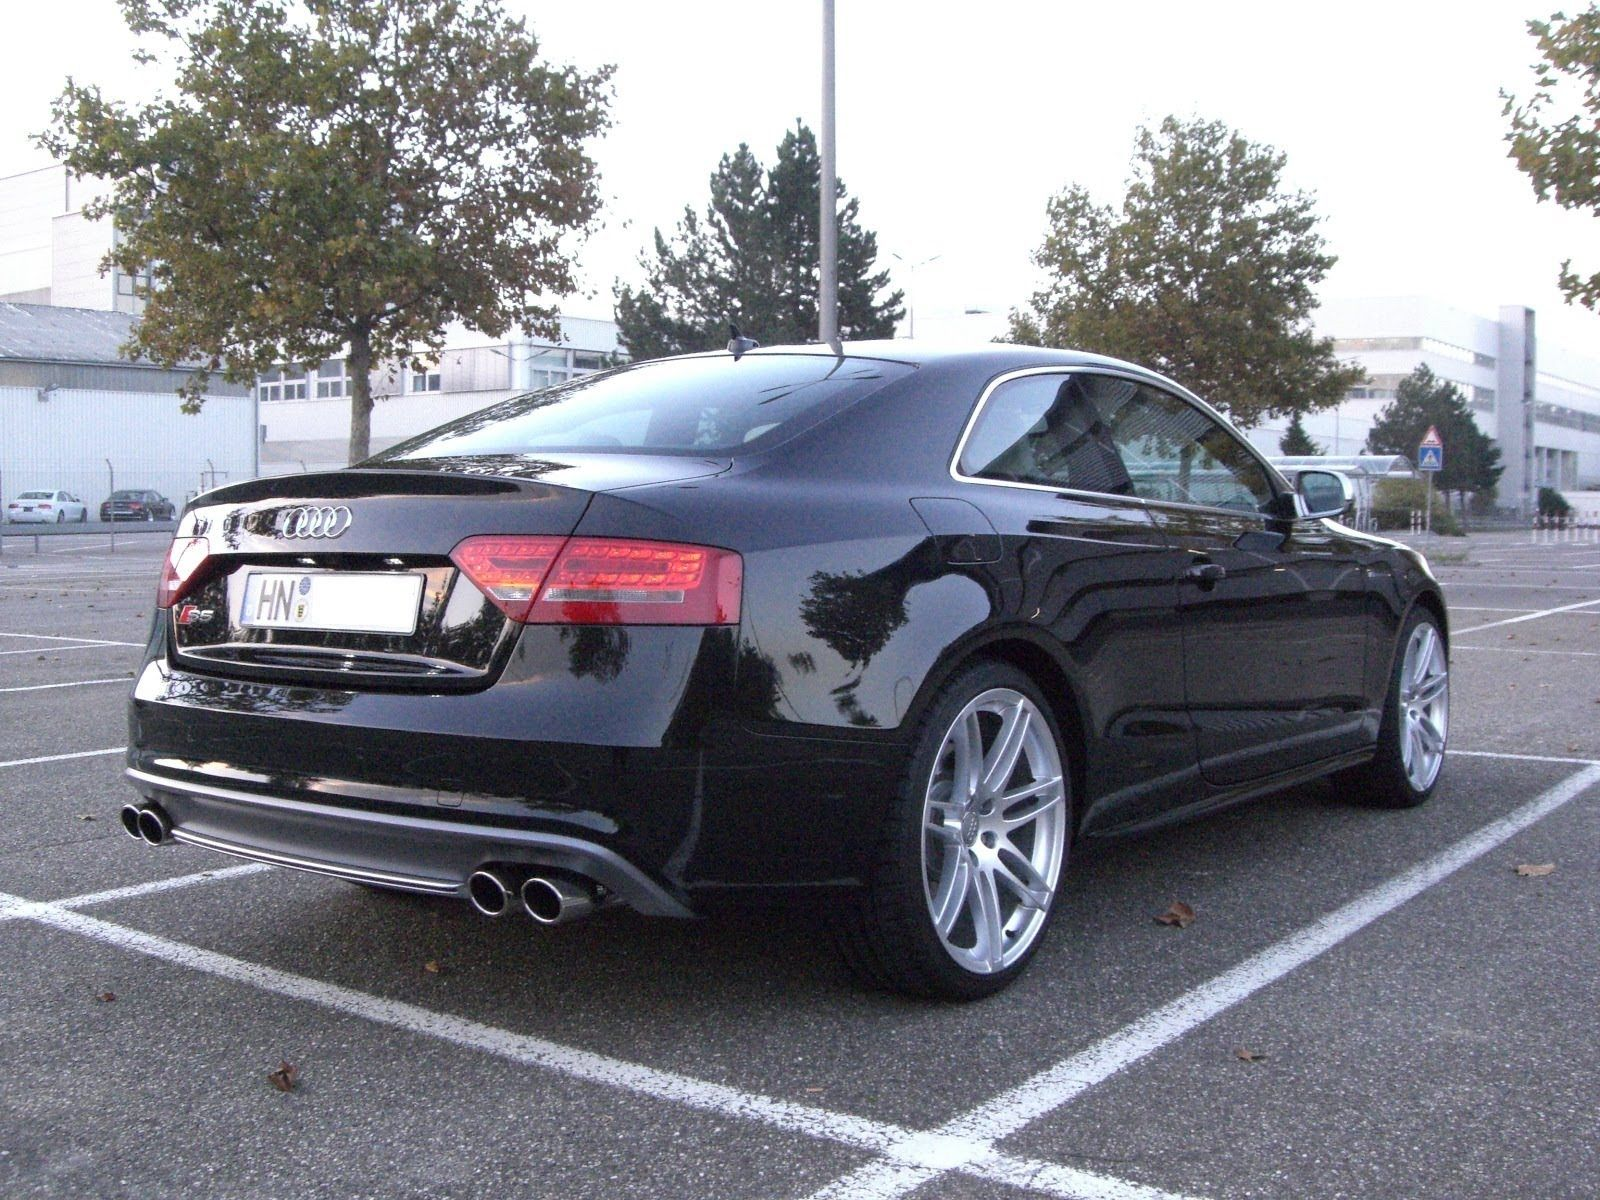 audi s5 coupe 4 2 v8 tiptronic with capristo flap exhaust. Black Bedroom Furniture Sets. Home Design Ideas